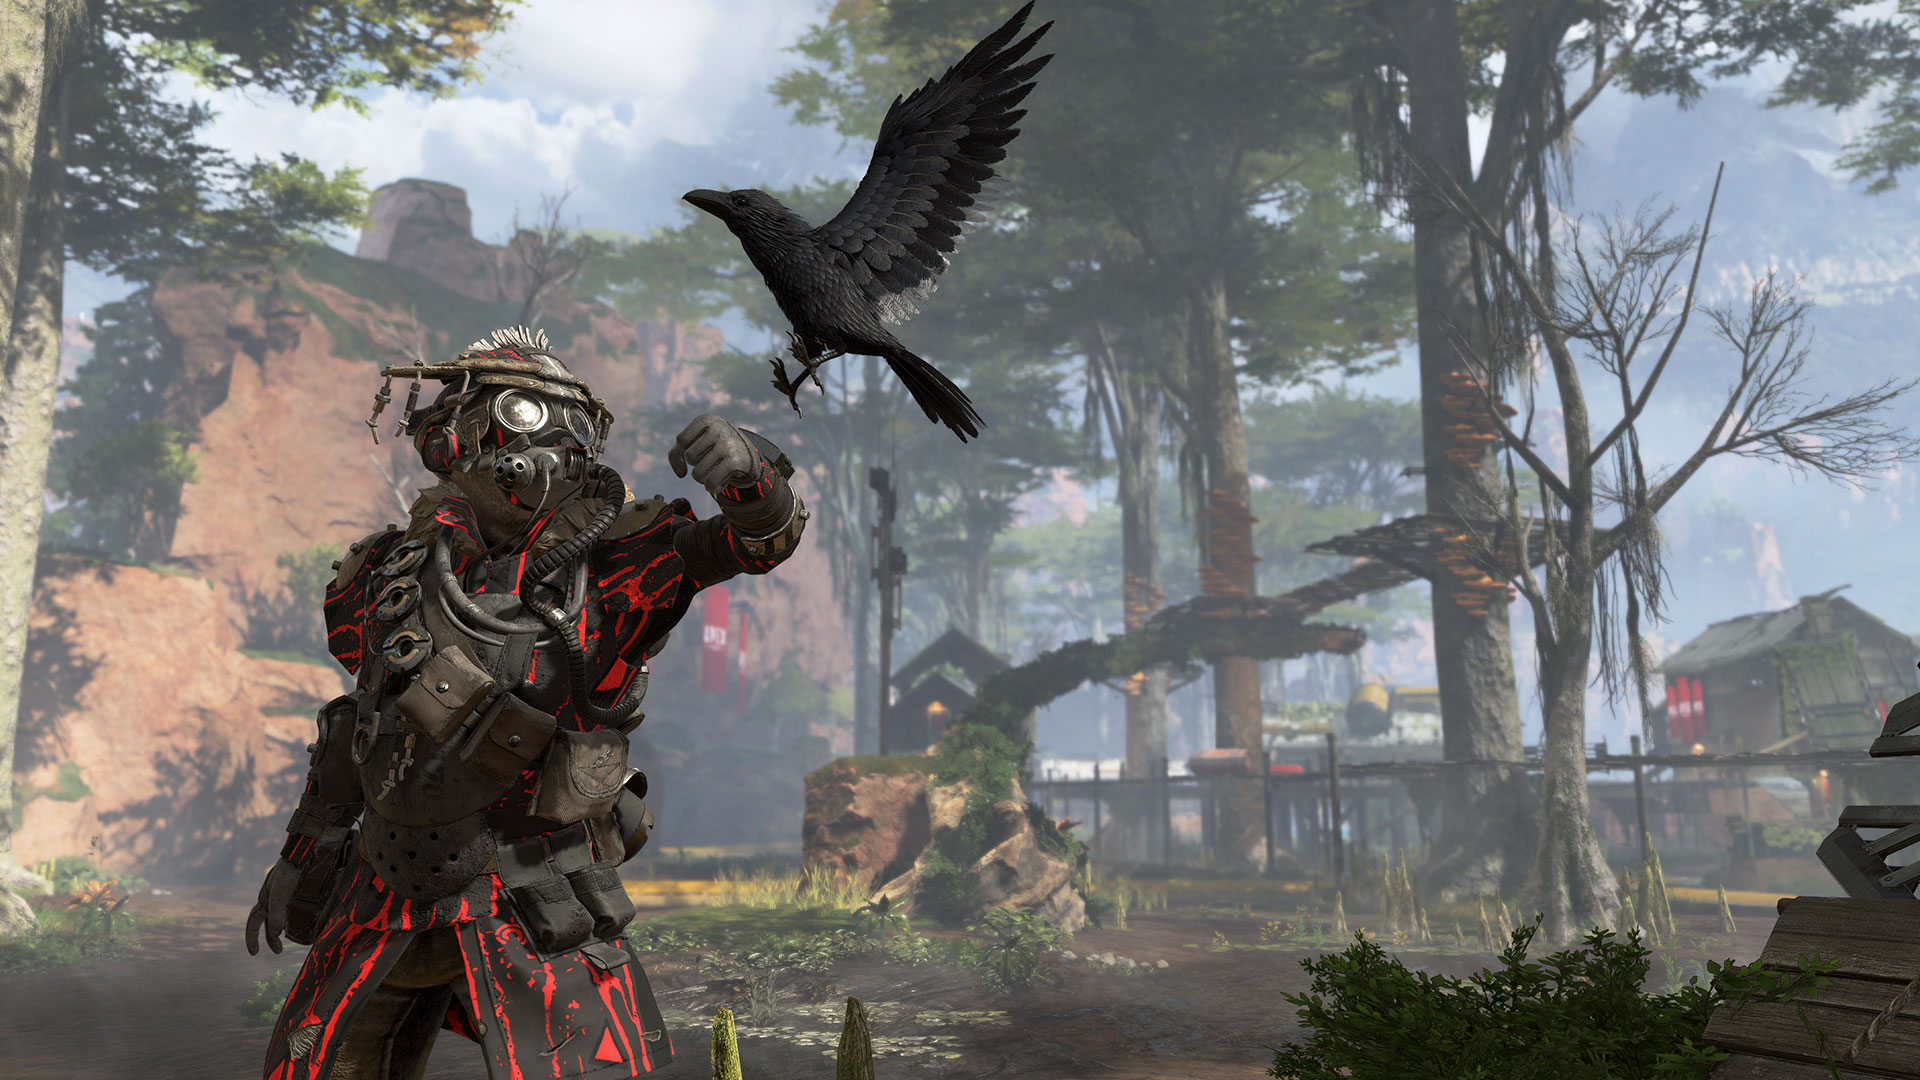 Apex Legends download: How to download Apex Legends on all